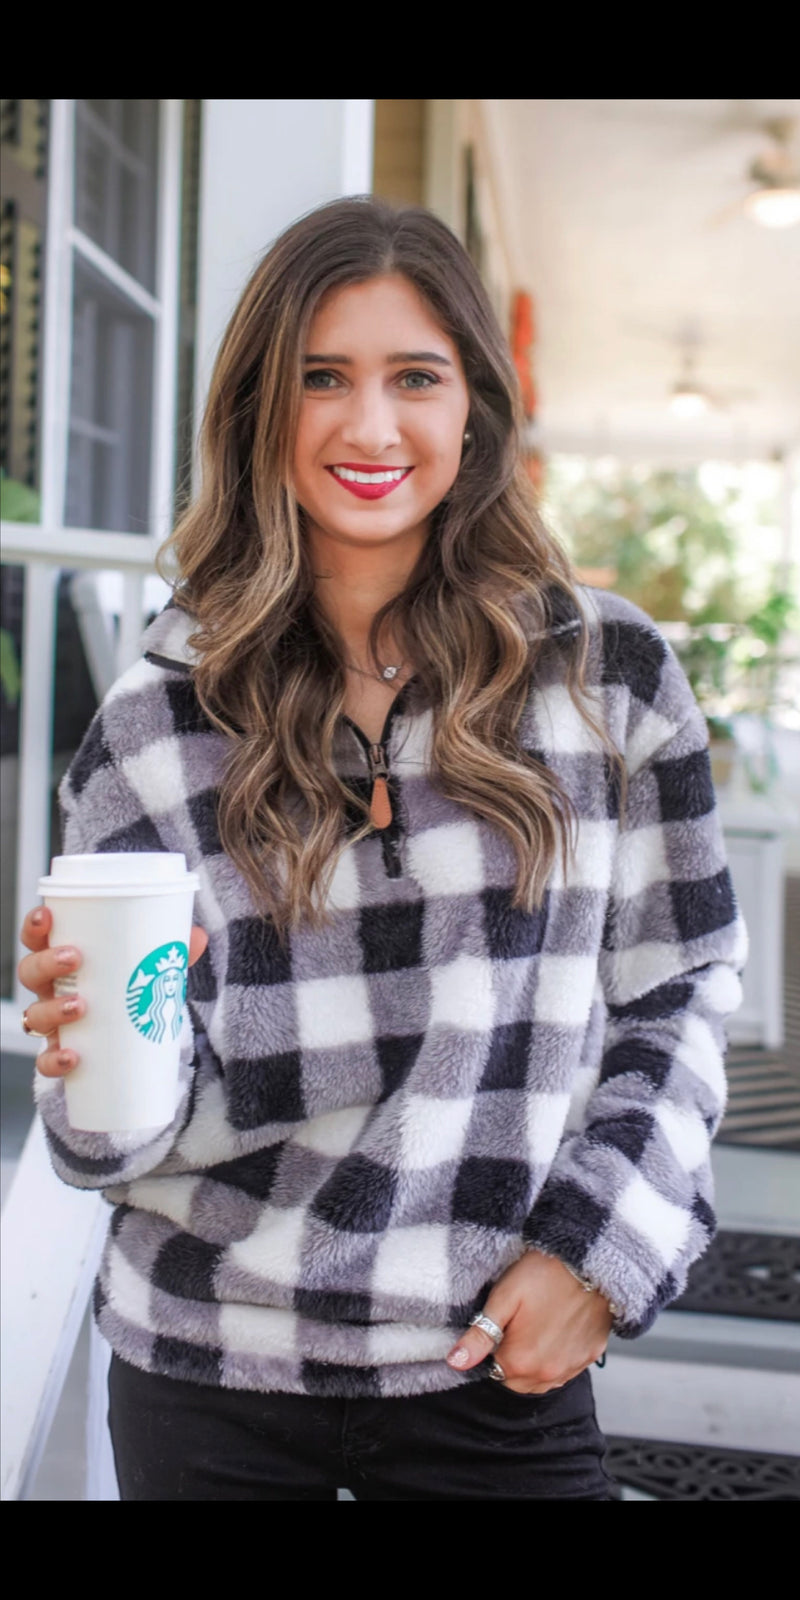 Baylor Buffalo Plaid Fleece Pullover Top  - Also in Plus Size